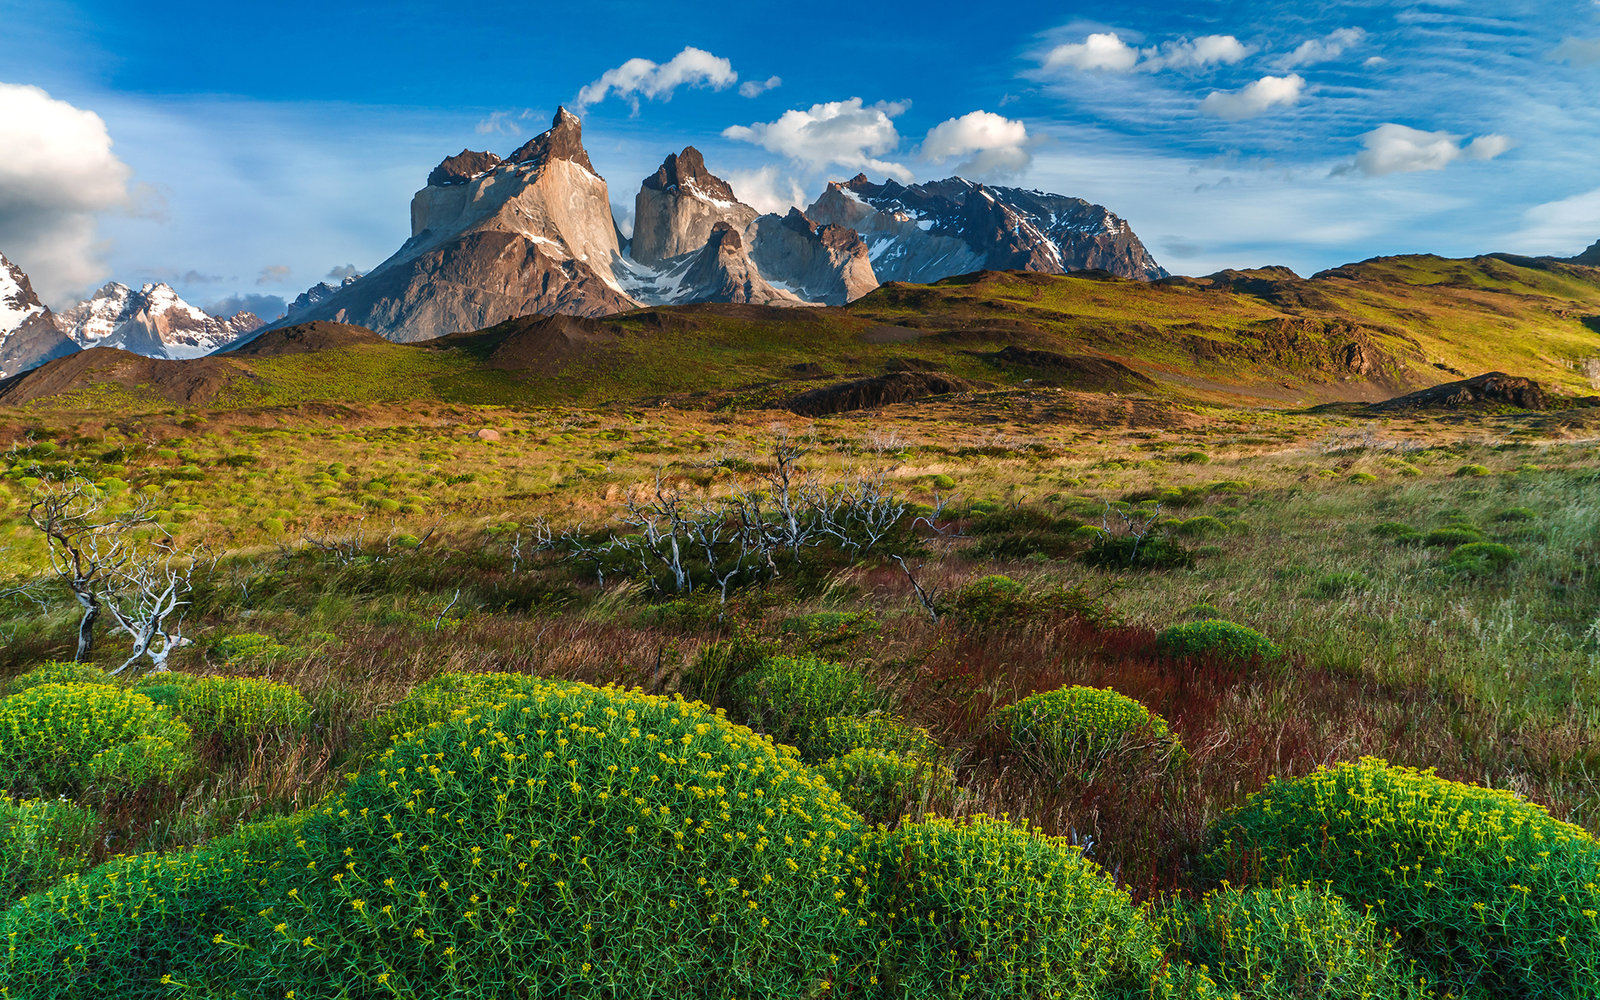 National Park Torres del Paine in southern Chile